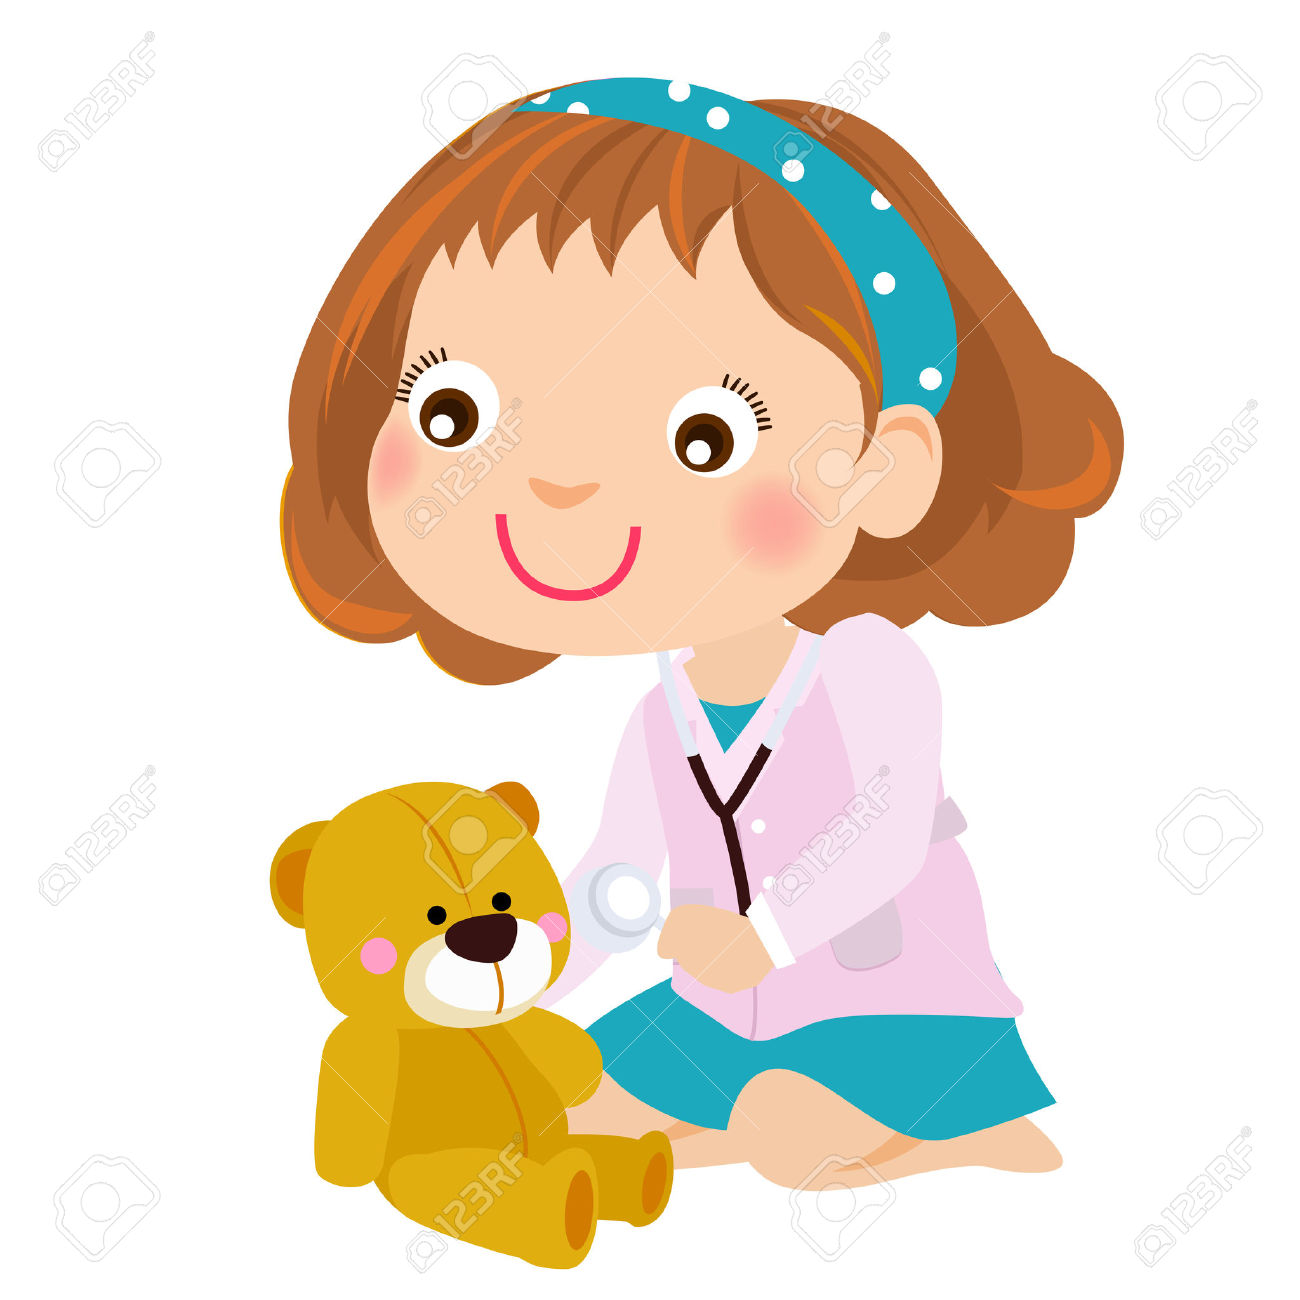 Child playing doctor clipart black and white clip royalty free library Doctor Clipart For Kids | Free download best Doctor Clipart For Kids ... clip royalty free library